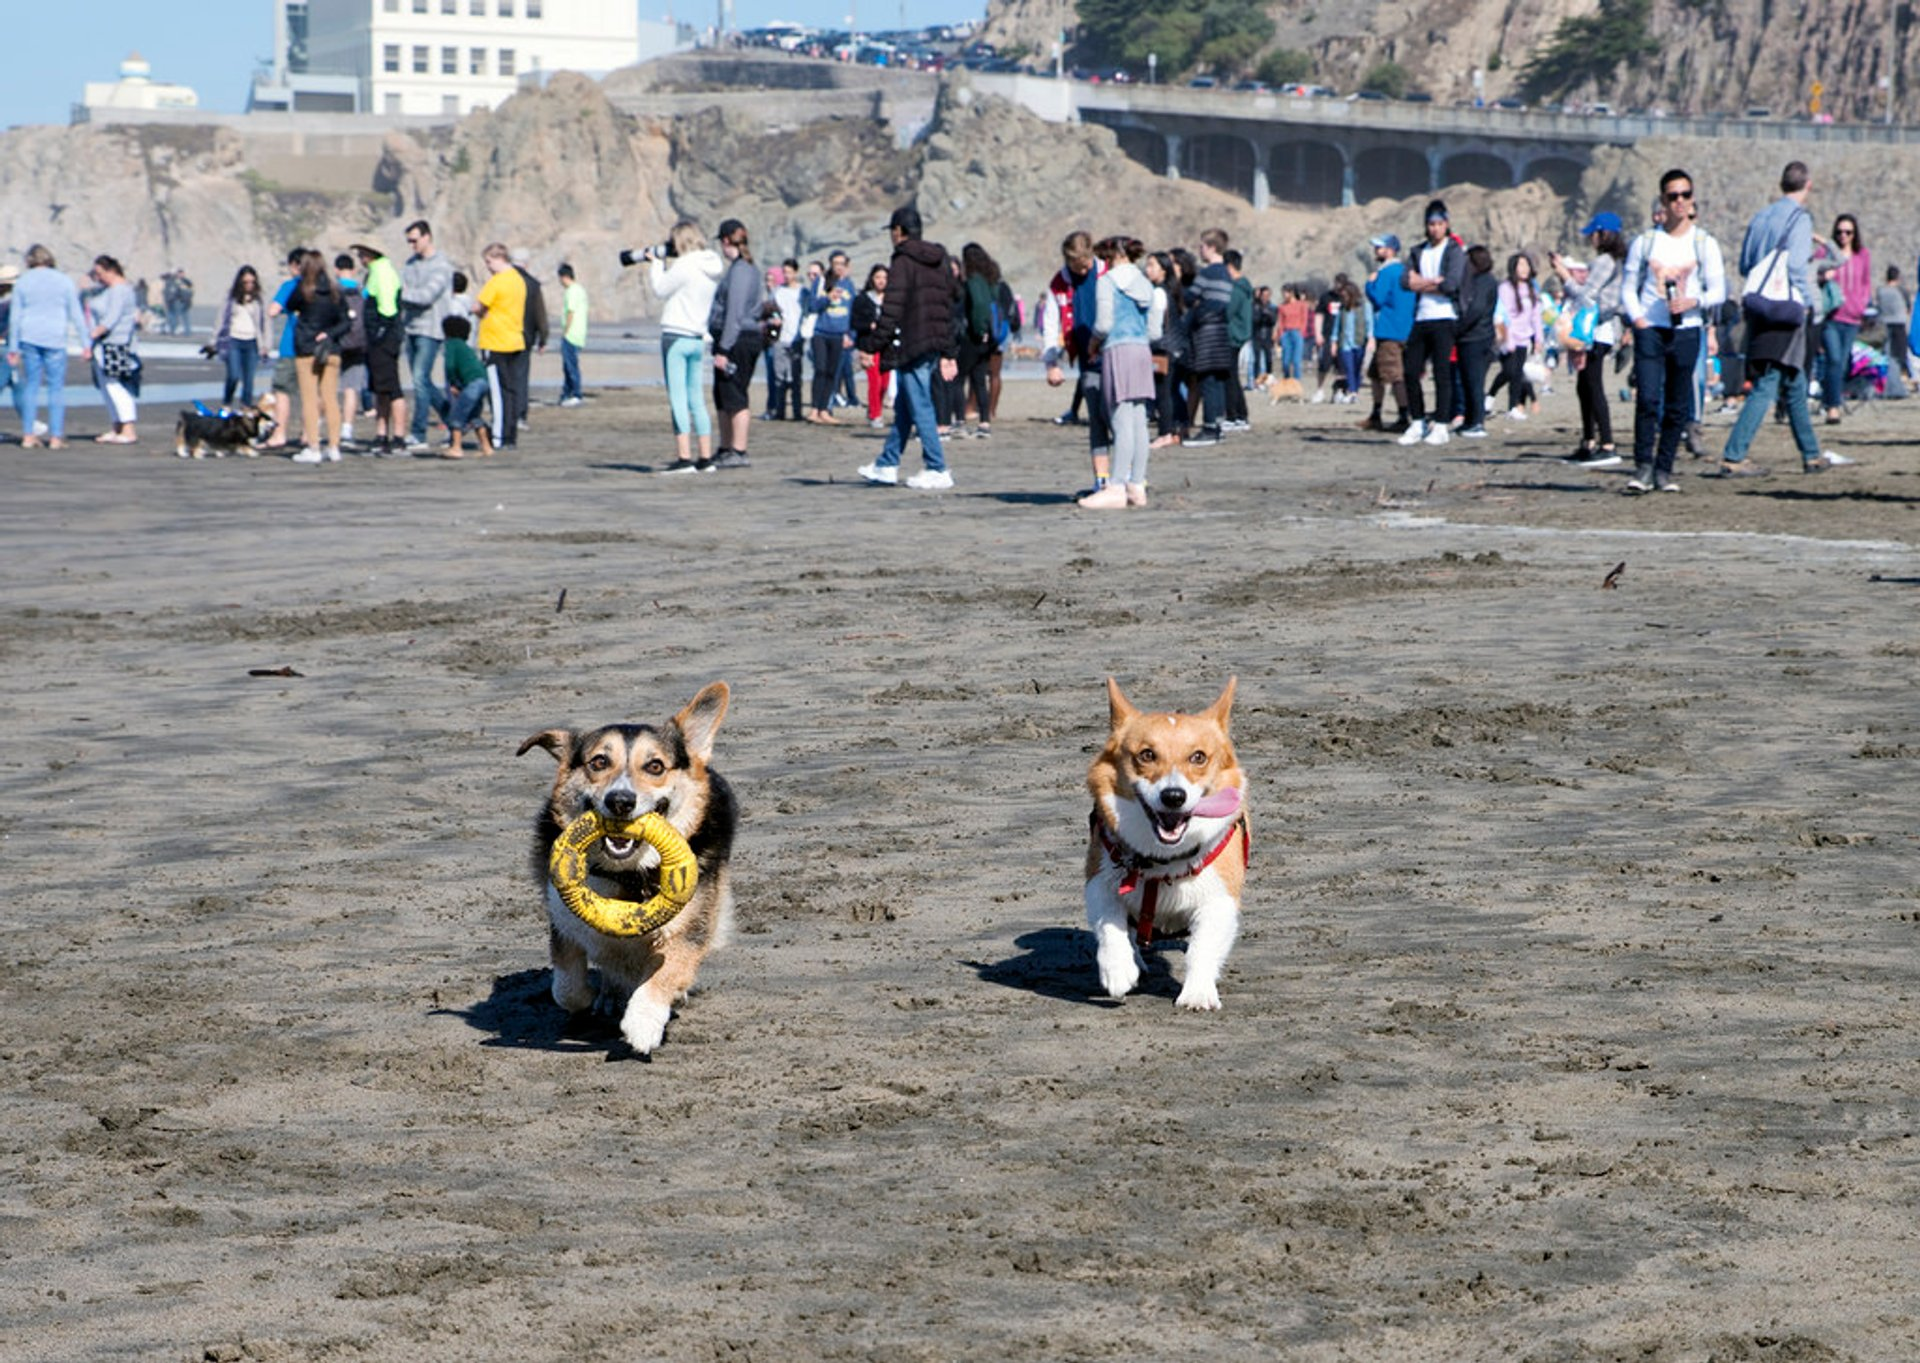 Corgi Con in San Francisco - Best Season 2020